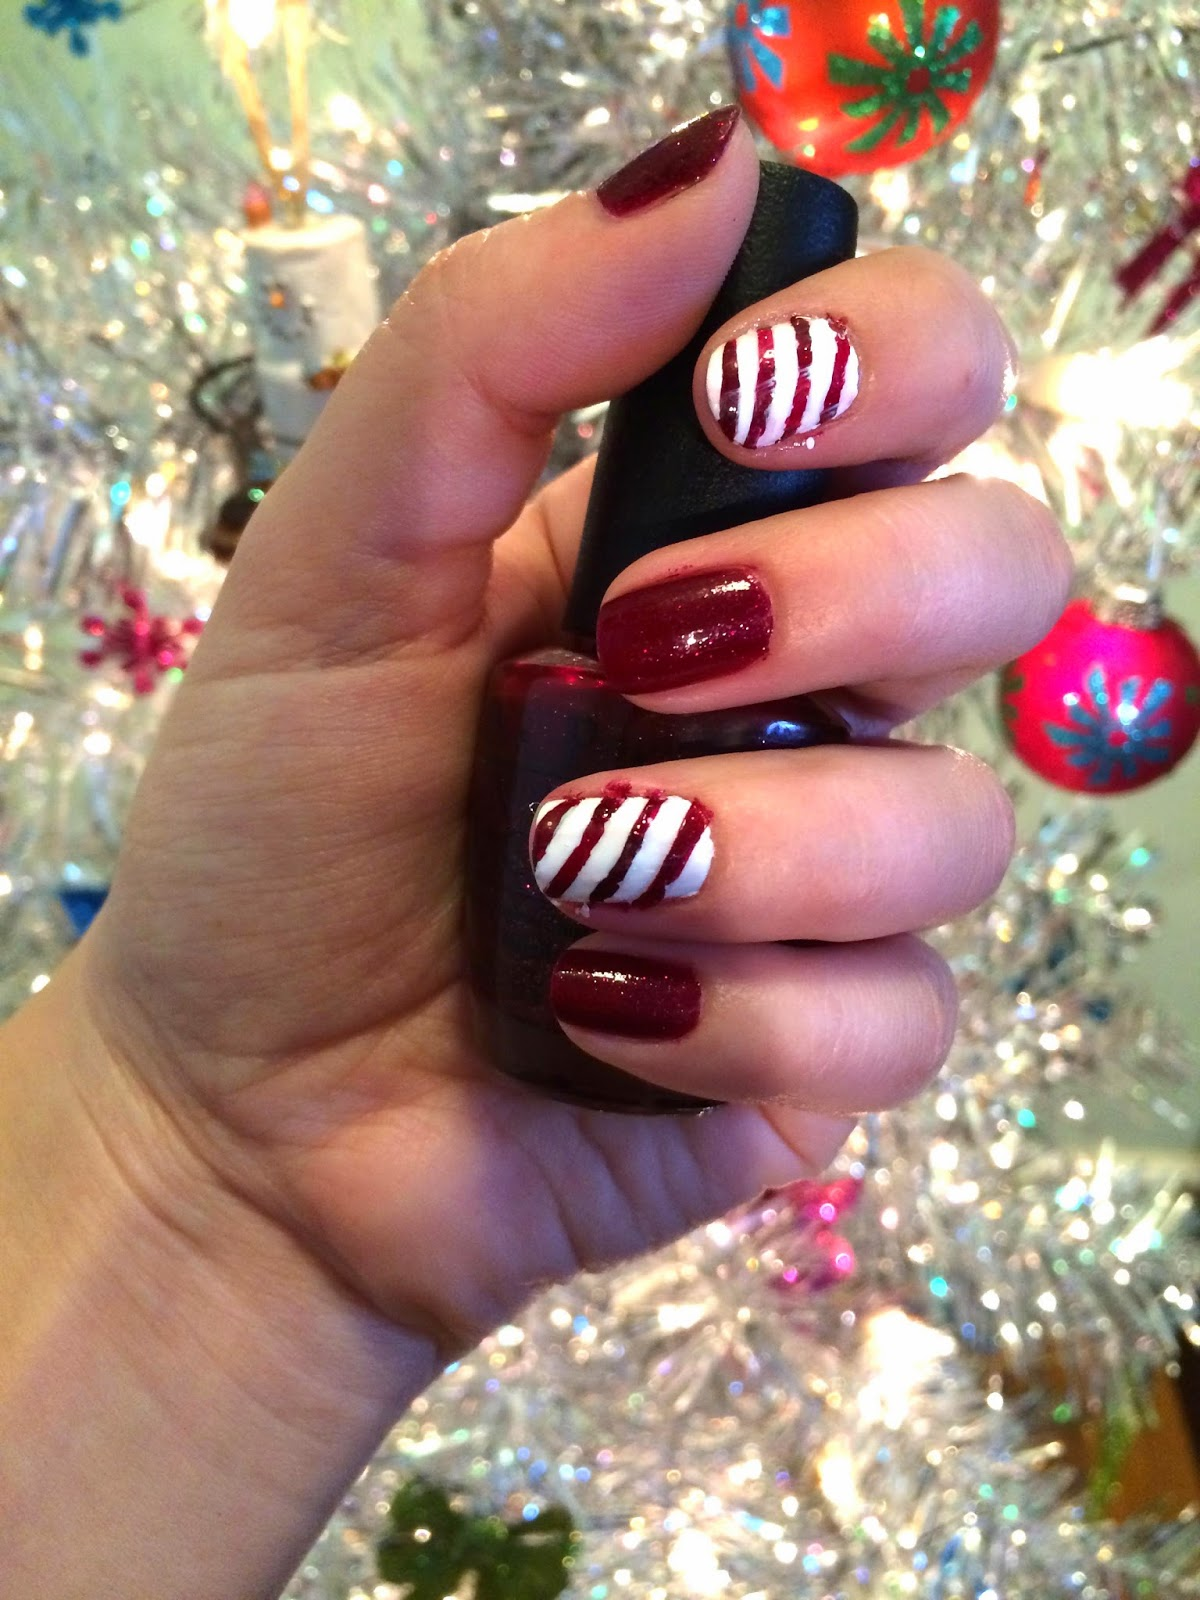 12 Days Of Festive Nails Day 1 Candy Cane Beauty By Birdy